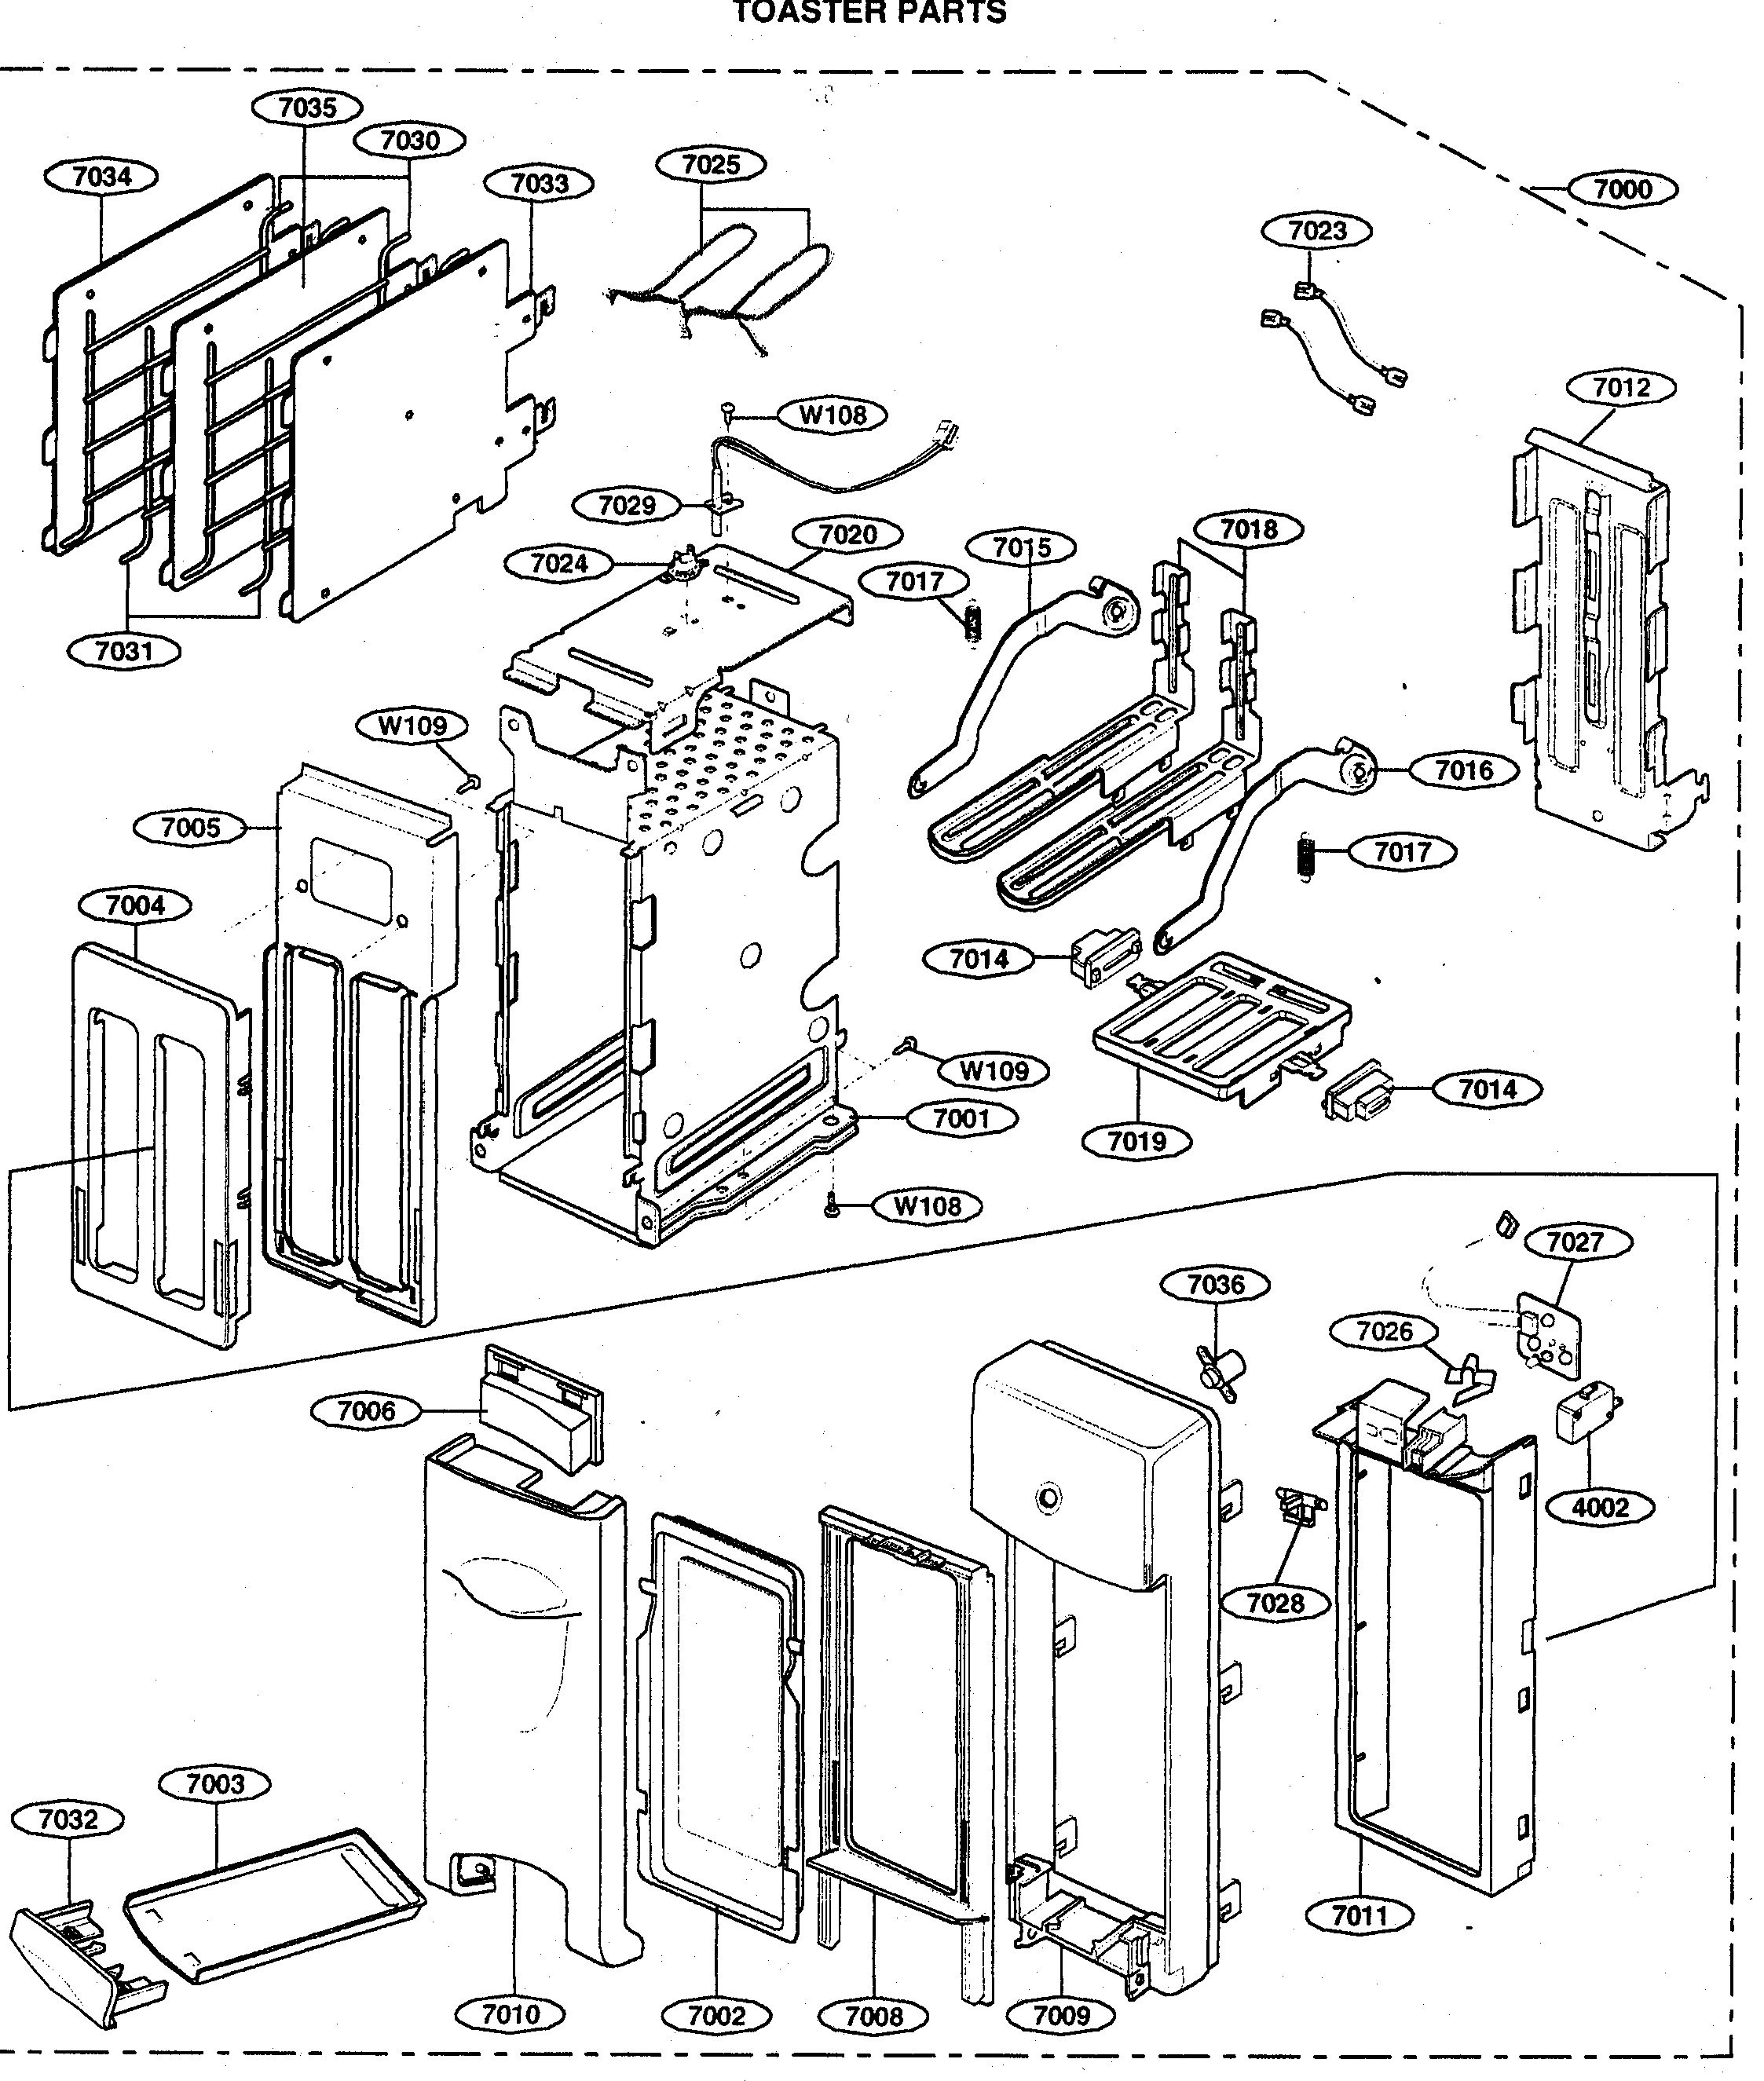 Toster Parts Diagram